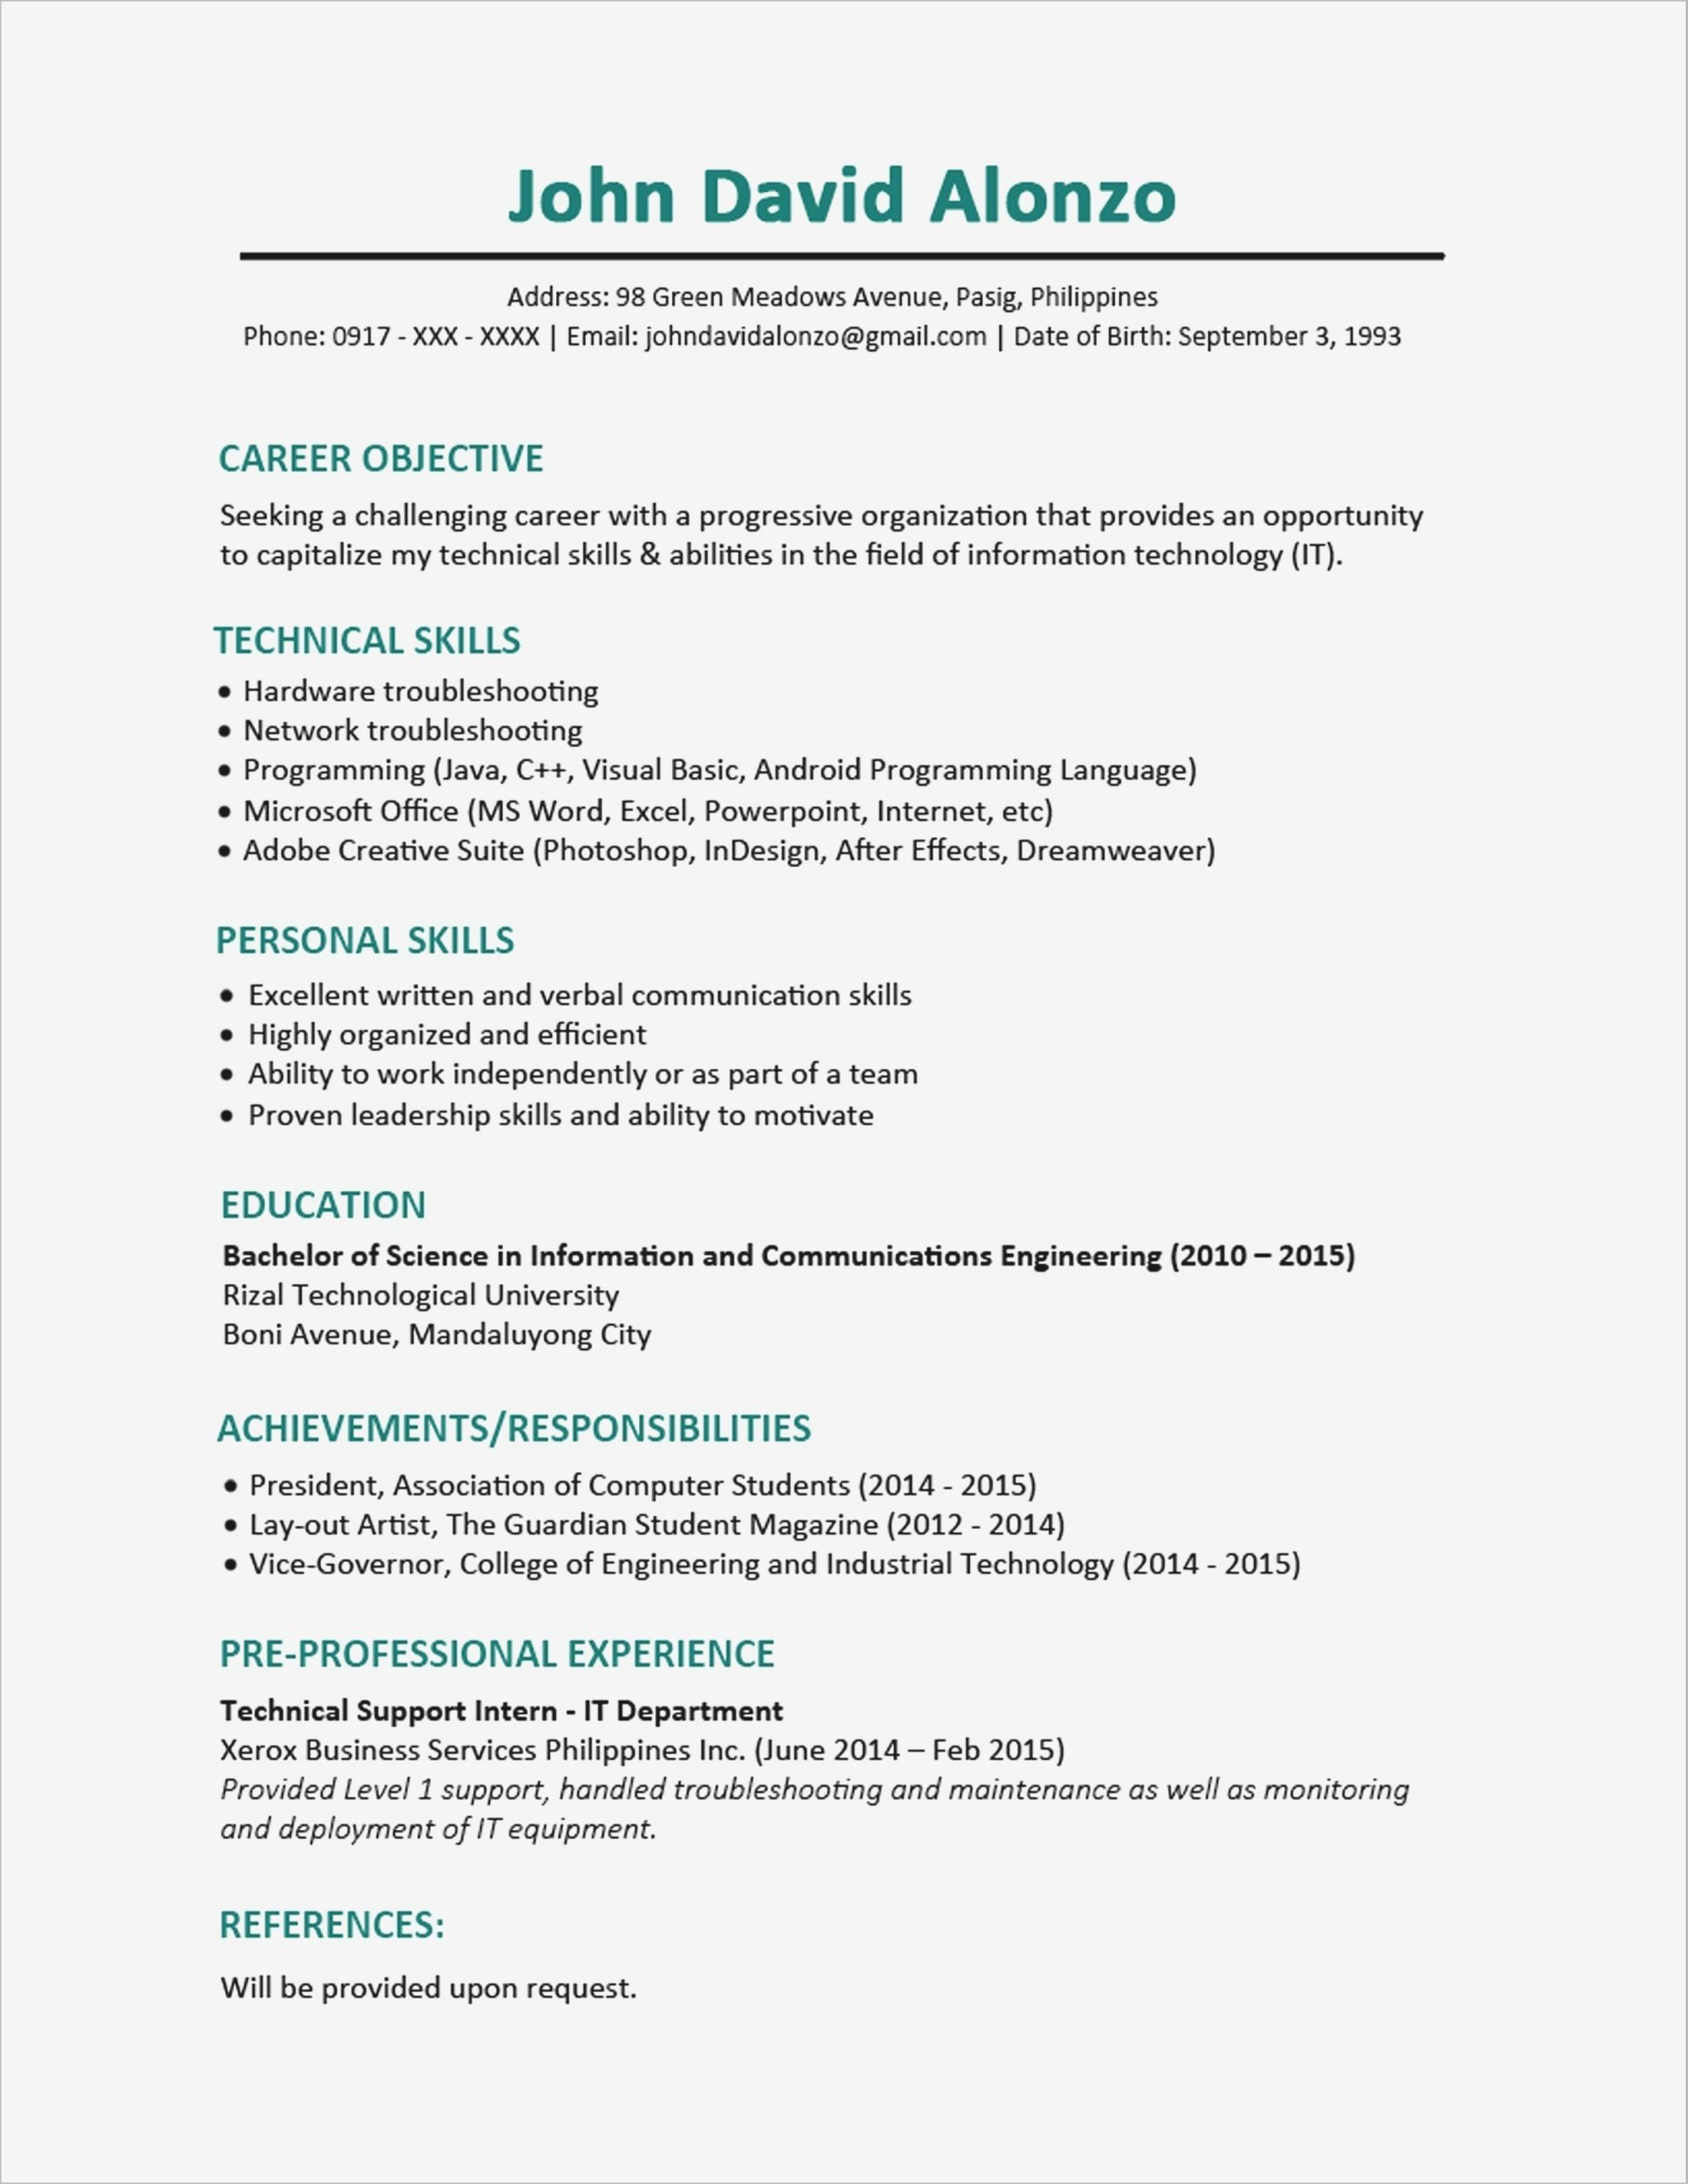 Resume for Environmental Services - 25 Luxury Environmental Services Resume